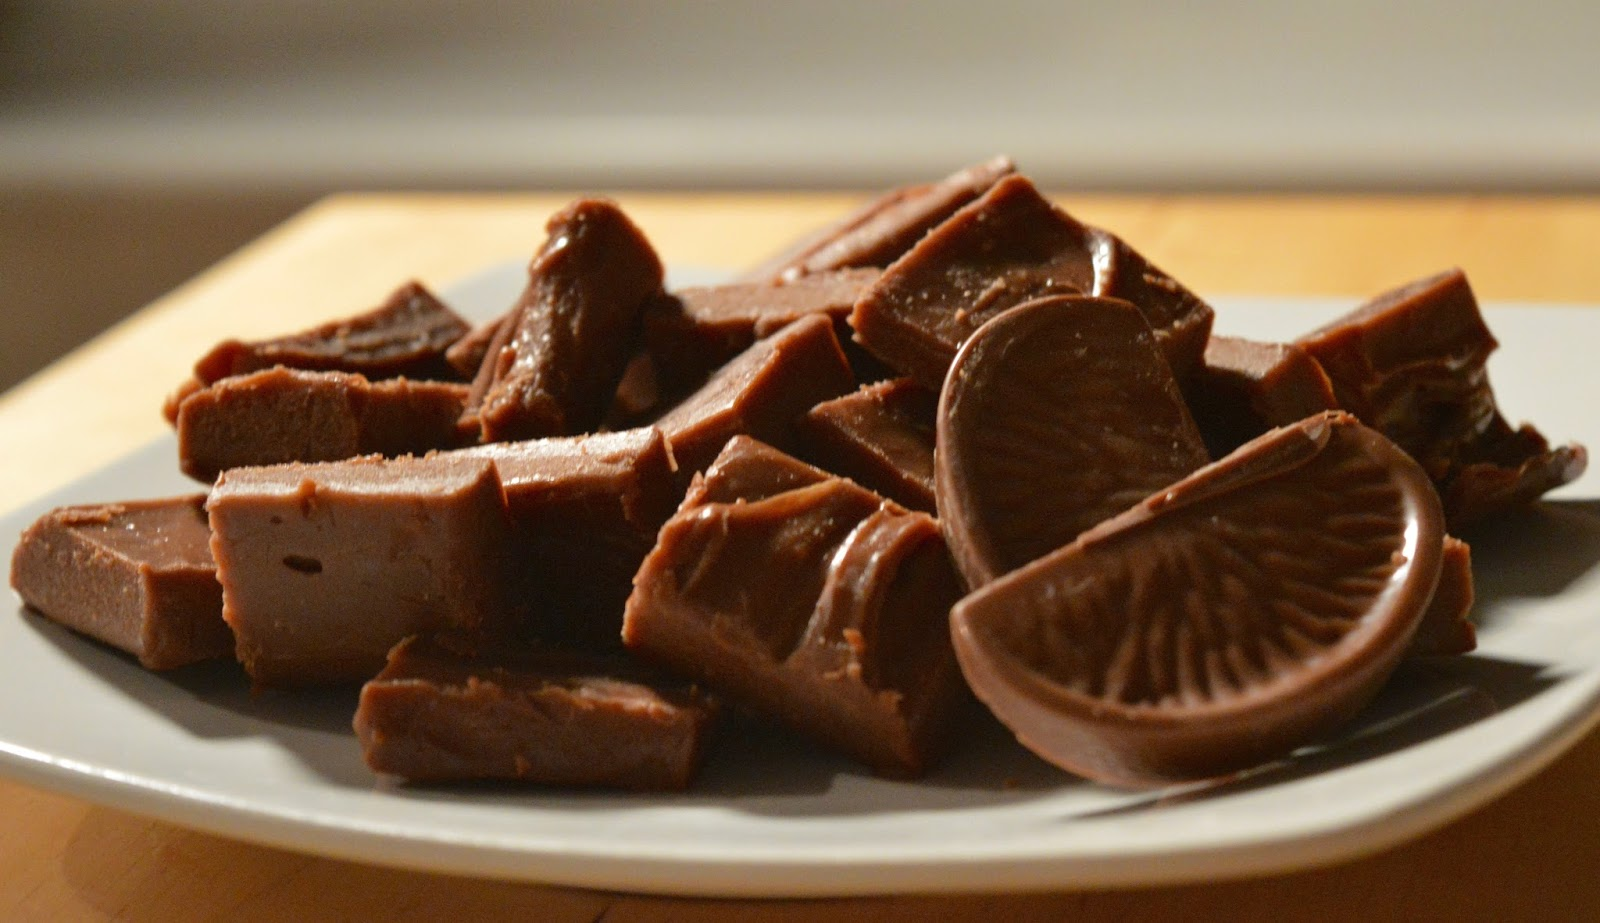 Terry's Chocolate Orange Slow Cooker Fudge Recipe - A Homemade & Edible Christmas Gift  - finished result